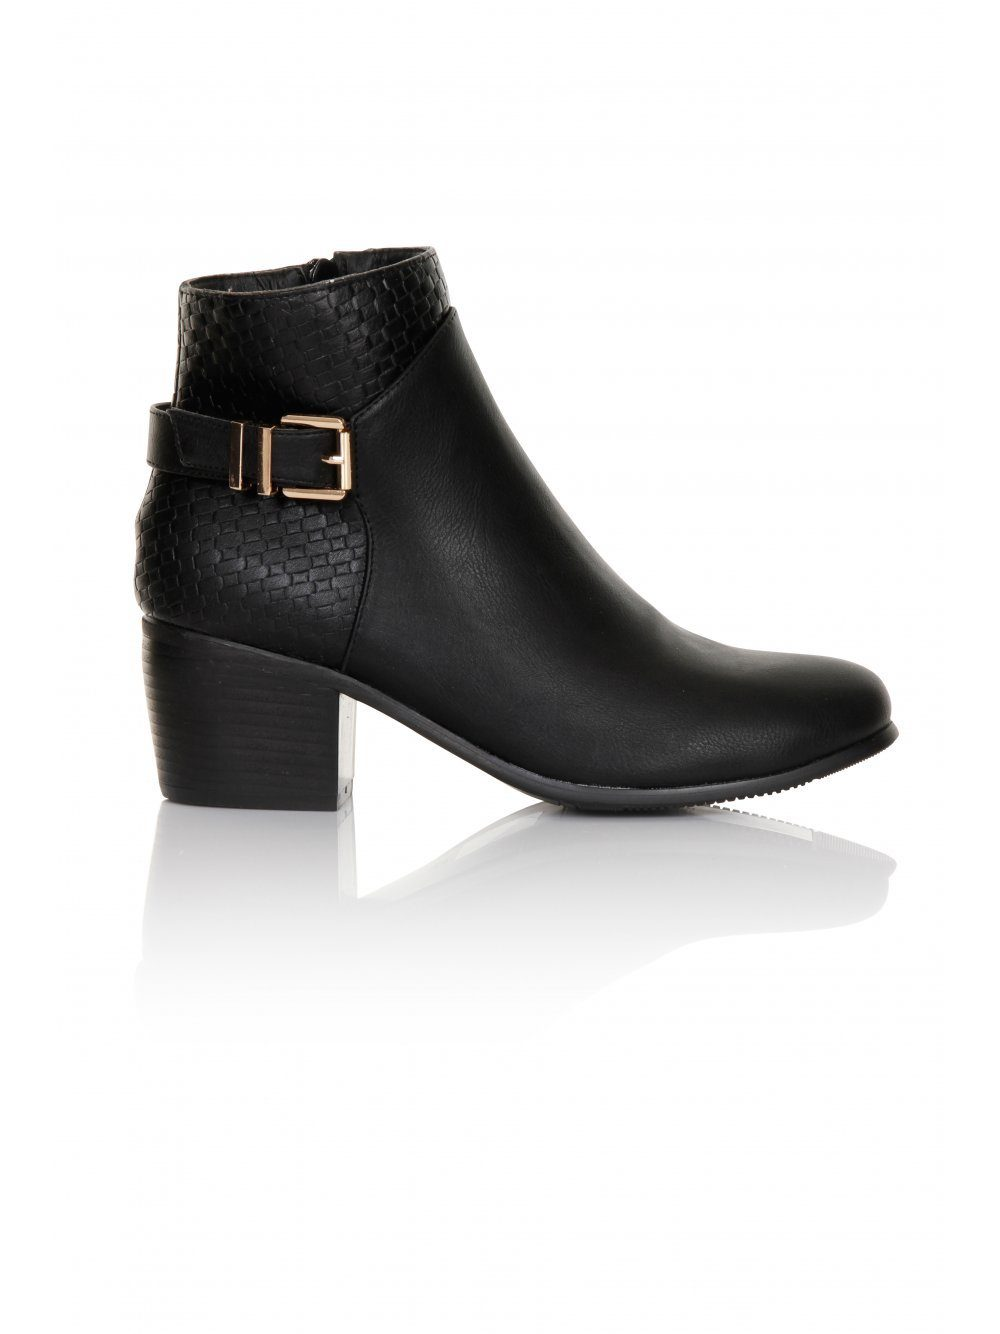 Black Weave Buckle Detail Boots